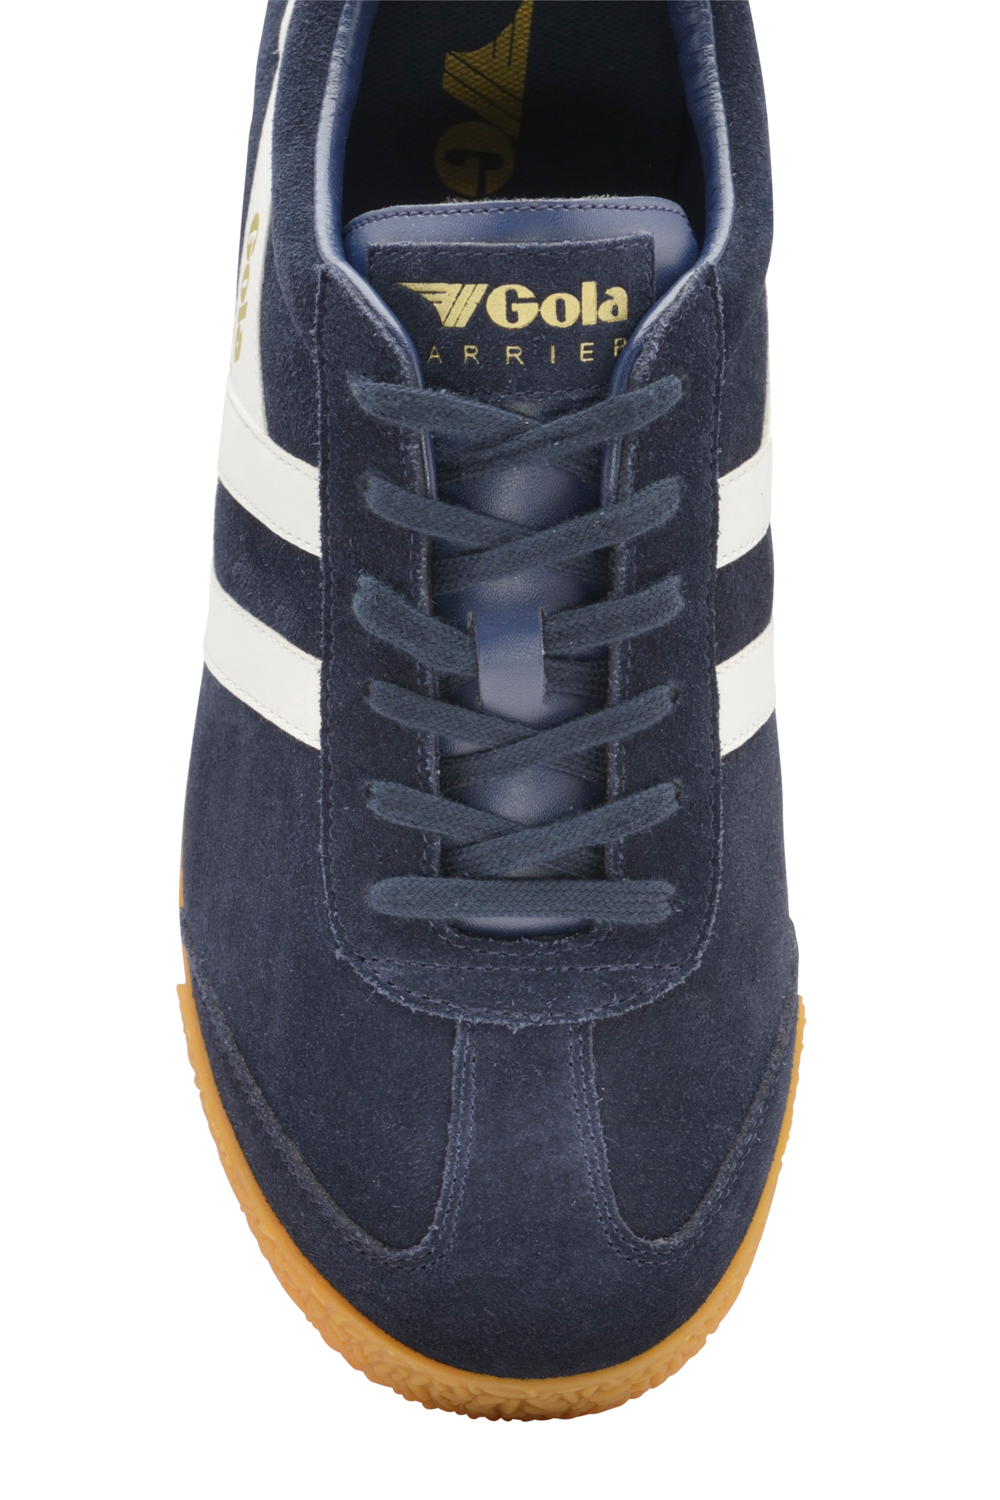 thumbnail 3 - Gola Harrier Suede Classic Vintage Lace-Up Sneakers Mens Trainers Low Top Shoes